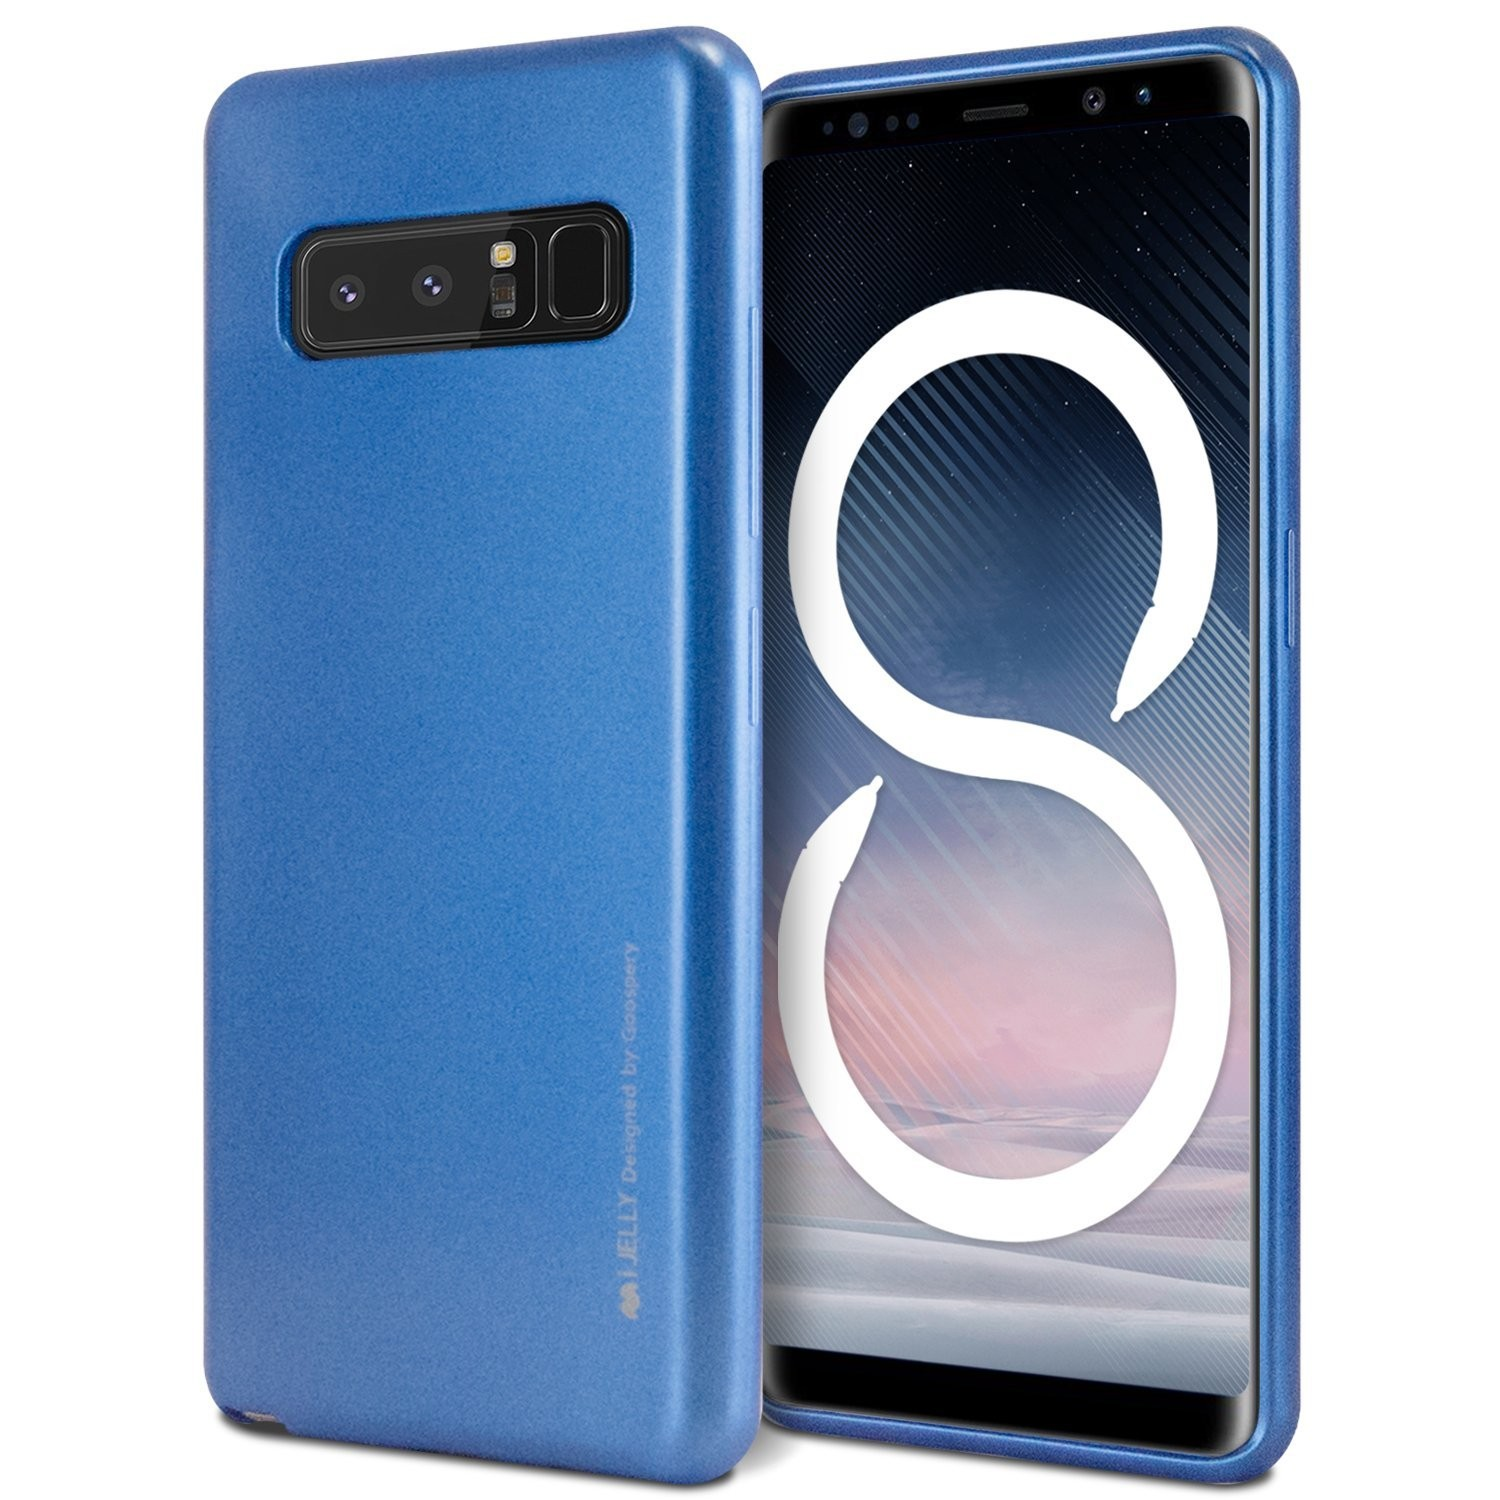 TPU gel ovitek Goospery iJelly Case za Samsung Galaxy Note 8 - moder